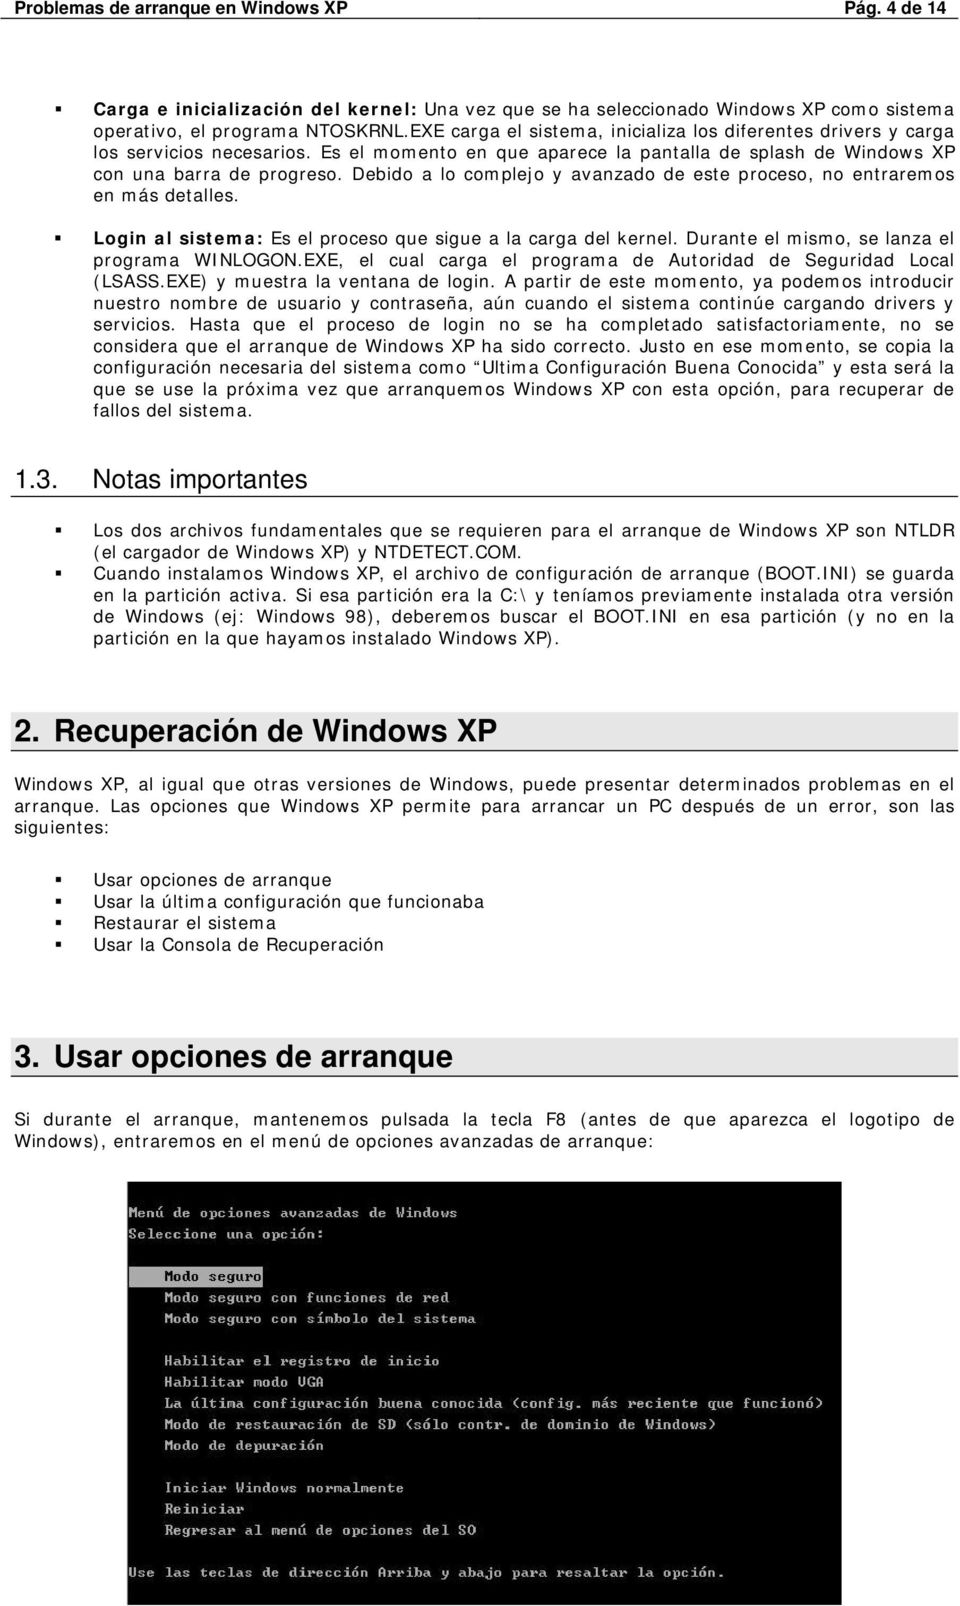 reparar lsass.exe windows xp